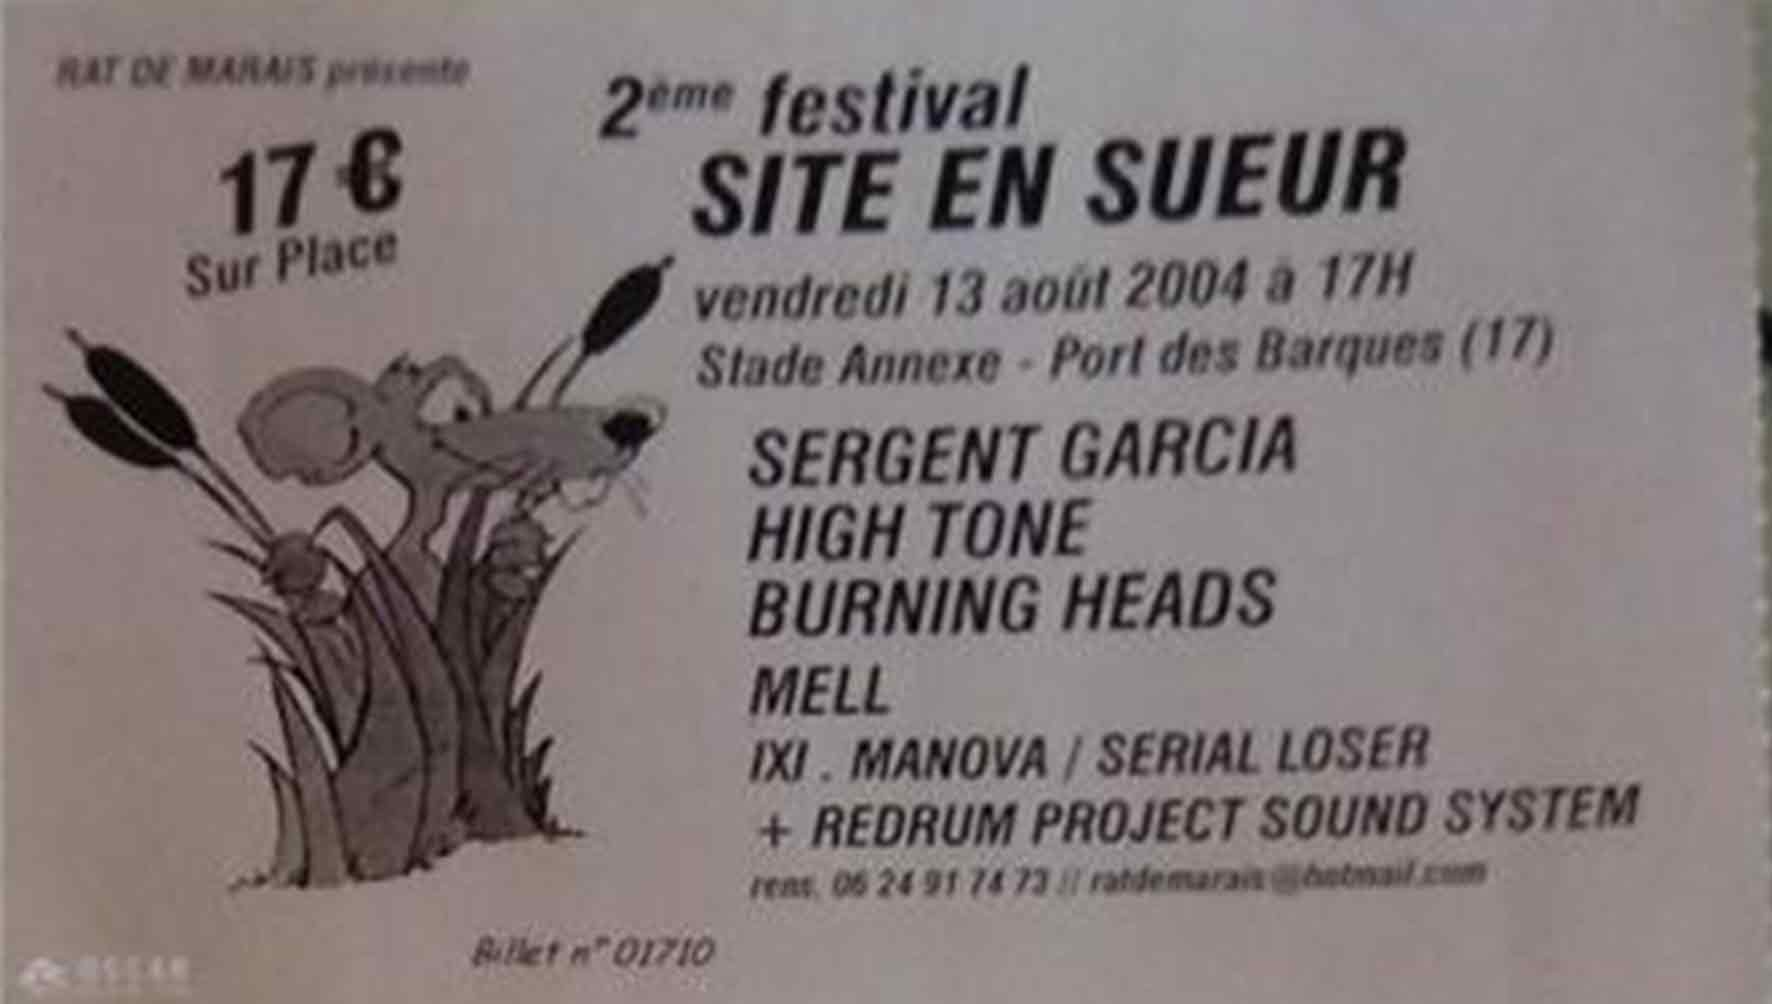 "13 aout 2004 Sergent Garcia, High Tone, Burning Heads, Mell, Ixi Manova, Serial Loser, Redrum Project Sound System à Port des Barques ""Stade Annexe"""